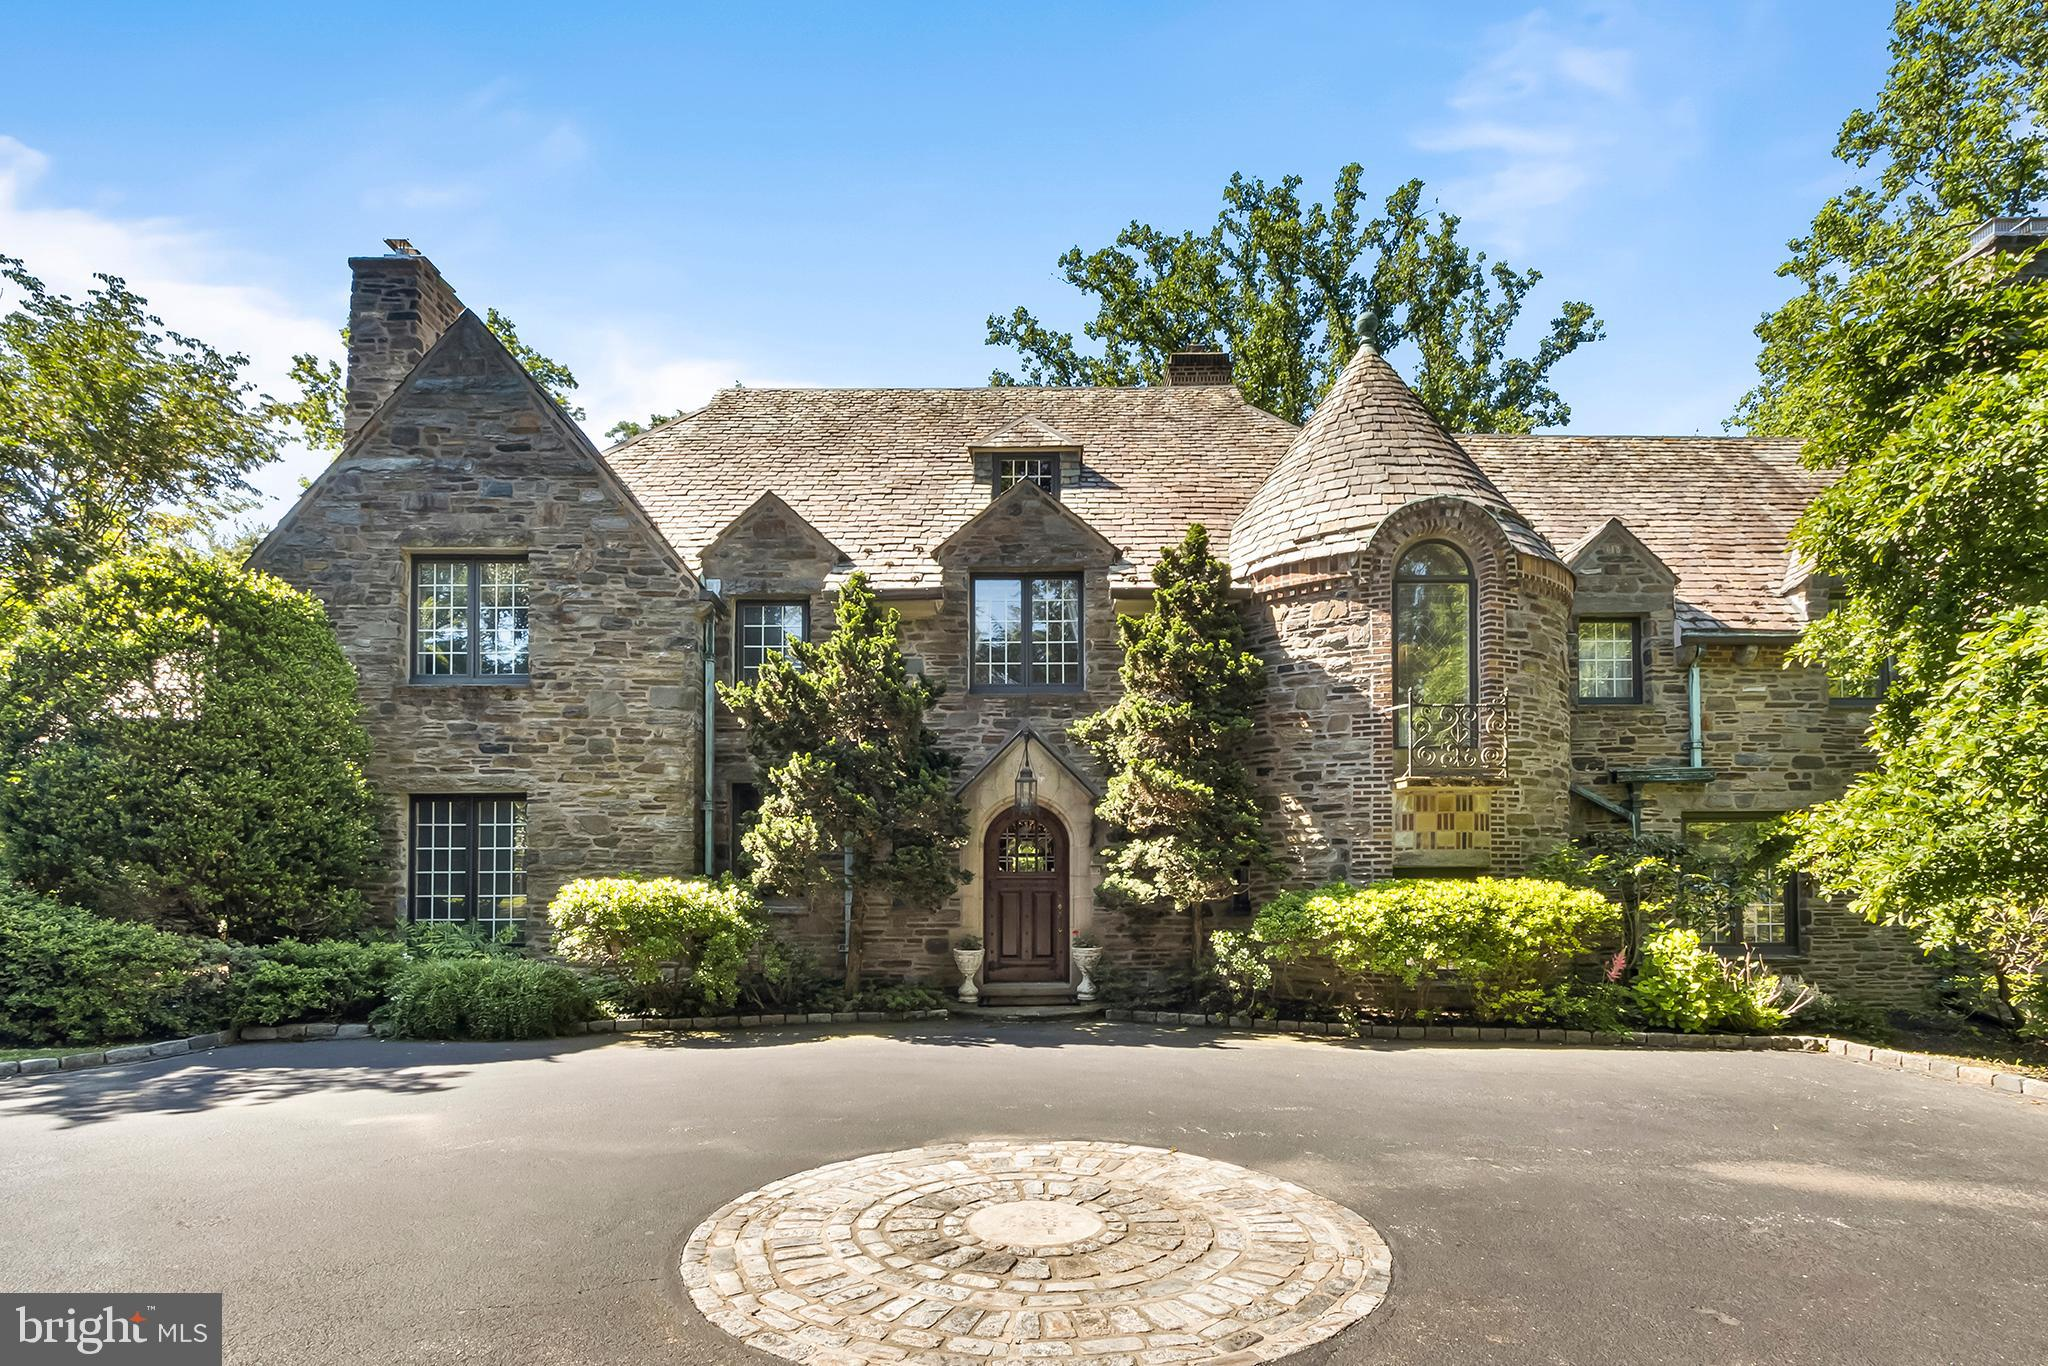 $600,000 PRICE REDUCTION. Now listed BELOW APPRAISED VALUE. You will definitely want to take a look at this unique property and take advantage of this rare opportunity. This stunning French Norman estate complete with a pool and tennis court displays the true elegance of a bygone era dating back to 1928. The unsurpassed craftsmanship and detail are evident from the moment one enters the courtyard. This spectacular home, situated in the heart of the Main Line, is on 2 plus acres and boasts a 4-car garage, multiple terraces, a koi pond, and everything needed for elaborate entertaining. Upon entering you are welcomed by high ceilings, exquisite moldings, stone and woodwork rarely seen in today's marketplace. It has been elegantly designed to incorporate both large and small spaces for intimate entertaining as well as larger more formal occasions.  As you enter the Great Hall with its exquisite wood paneling and built-in shelving you are welcomed with a fireside Sitting Area or Cardroom. This leads through arched doorways to an elegant Solarium overlooking multi-tiered terraces and the pool. There is a step-down Living Room enhanced by a stately stone fireplace, a high tray ceiling with a center rosette medallion, and large leaded glass windows with decorative transoms.  The quiet Study also features a private wet bar and window seat. A large formal Dining Room with an elegant triple window overlooks the pool and terrace area as well.  The Great Room is luxurious yet comfortable with a working bar for entertaining also featuring built-in shelves and cabinetry. The Eat-In Kitchen and service pantry is well equipped to host larger parties as well as everyday meals. There is an additional washer and dryer for excess linens and access to the attached 4 car garage.  The second floor has a gracious main bedroom with tray ceiling His and Her private Baths and Dressing Rooms with custom cabinetry. There are 4 additional bedroom suites. with custom bult-ins. There is private acc